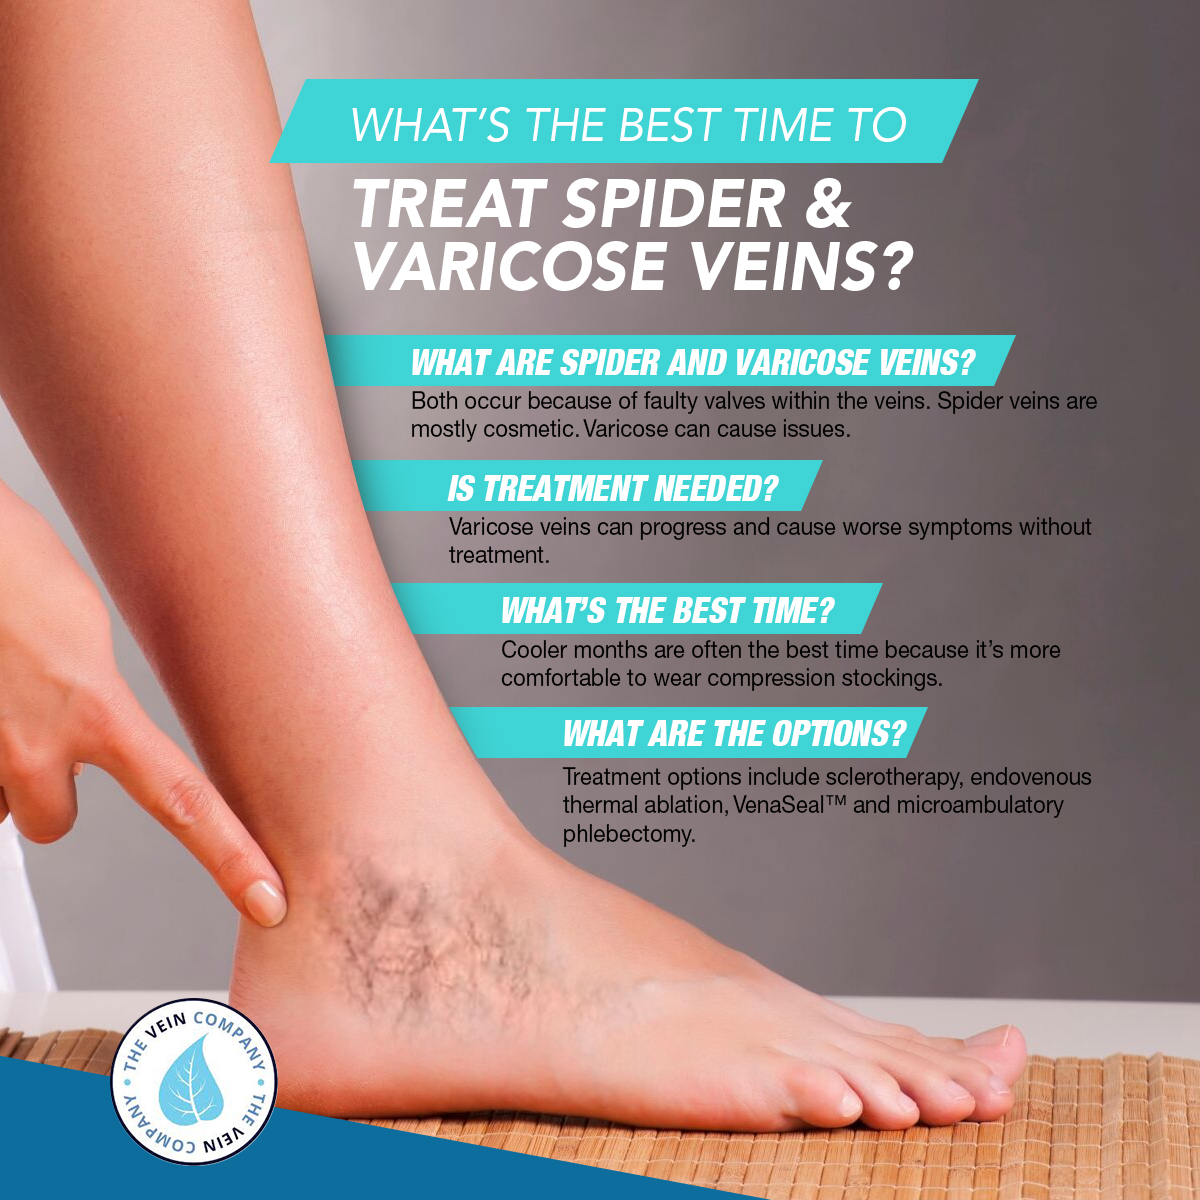 What's The Best Time To Treat Spider & Varicose Veins? [Infographic]